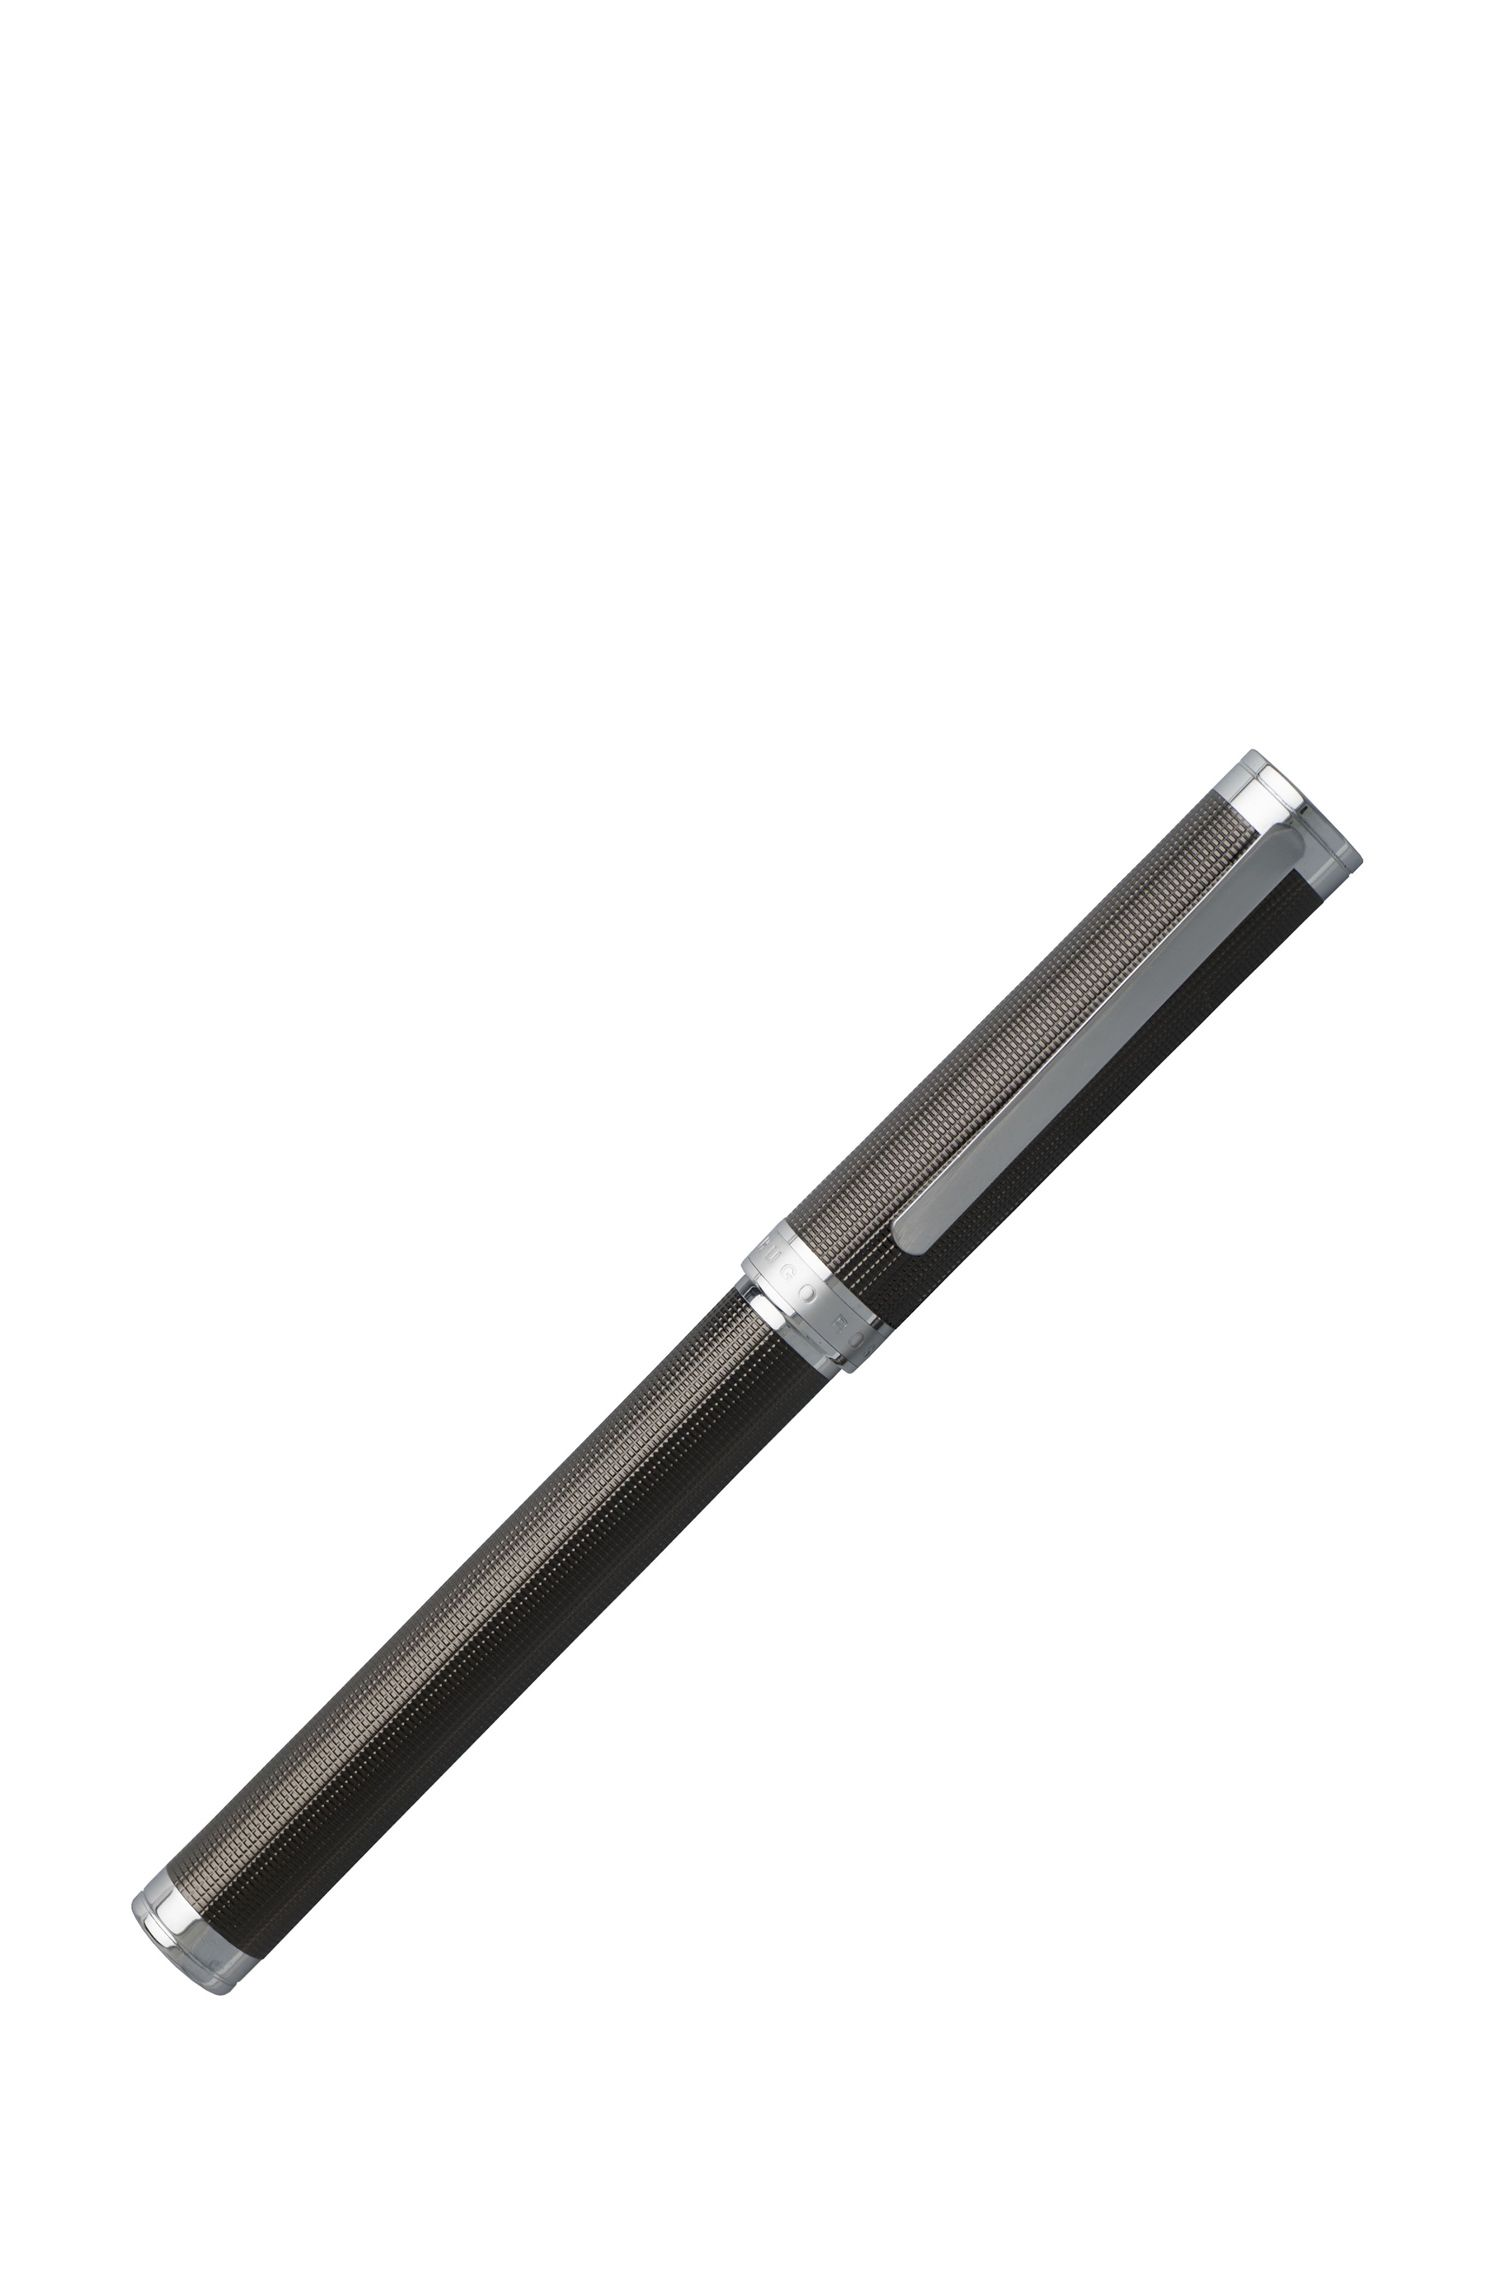 Column Dark Chrome Ballpoint Pen | HSW6515